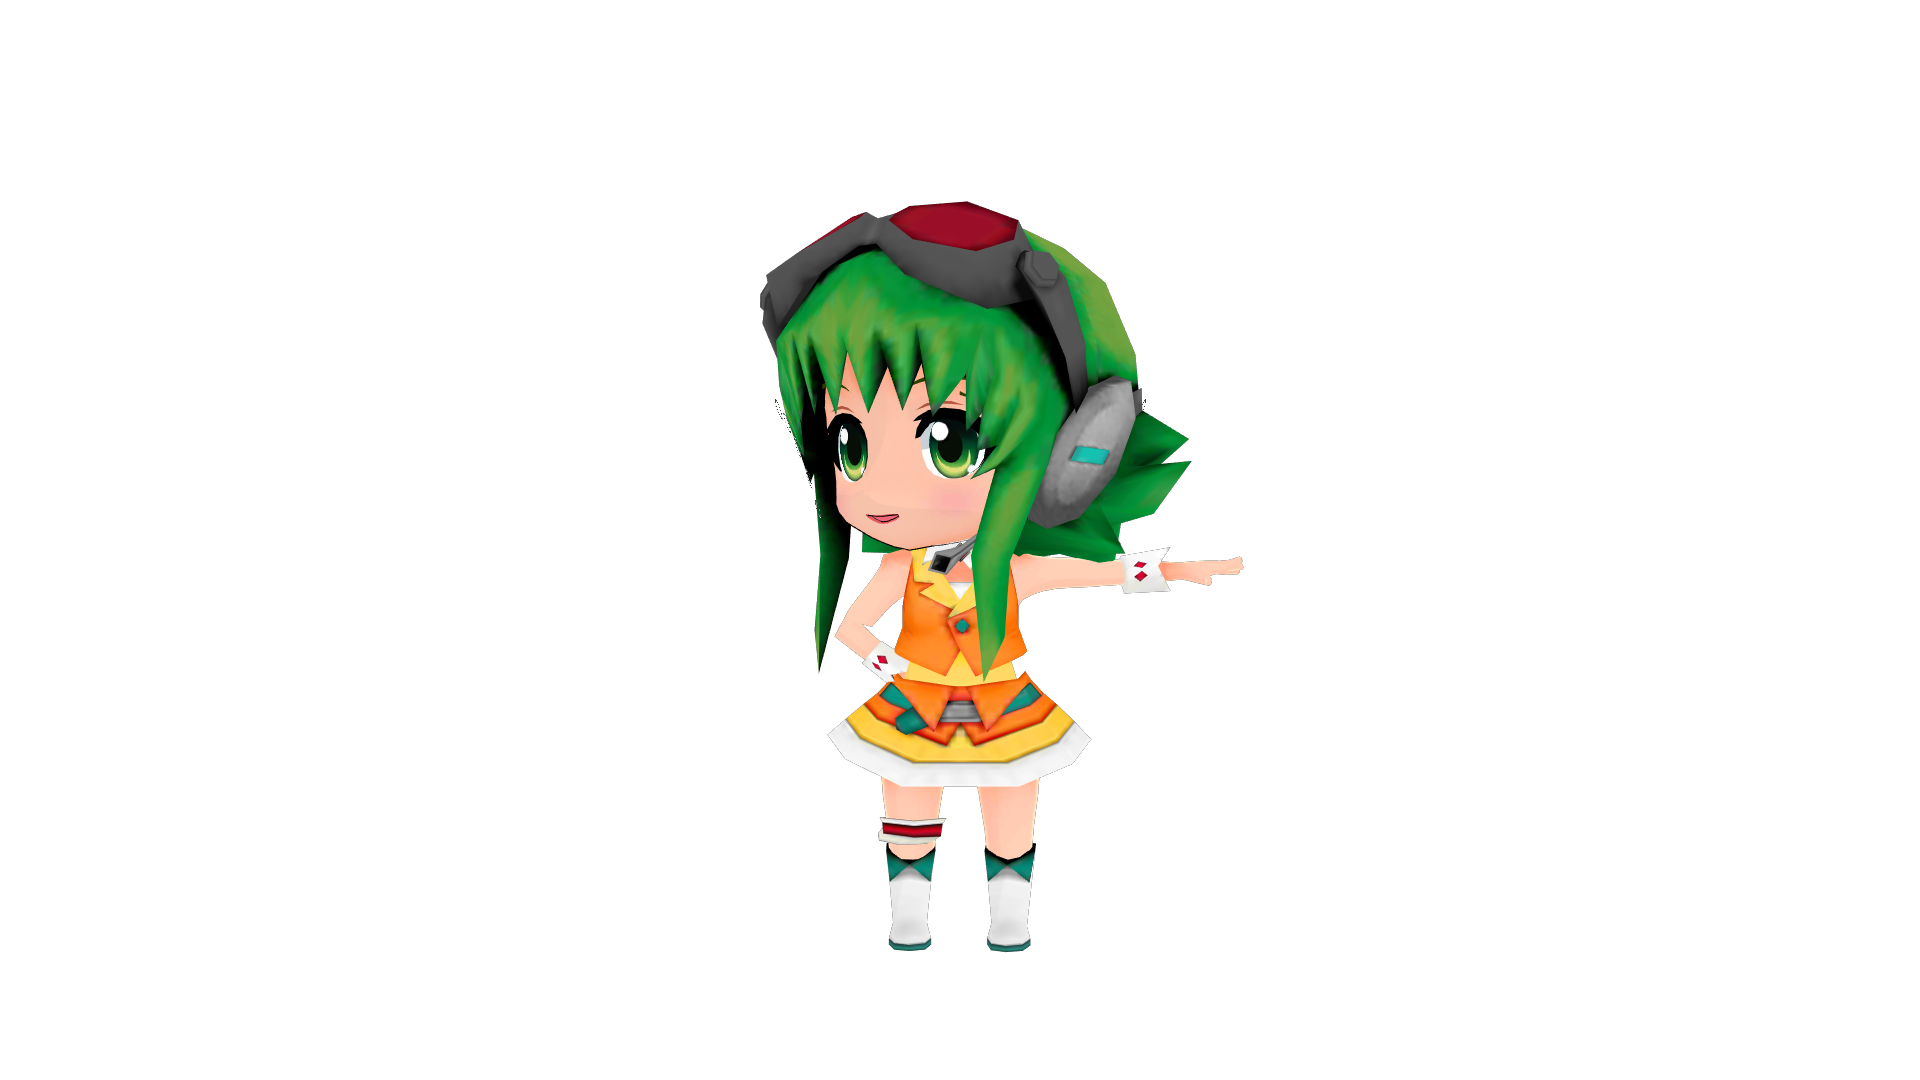 [MMD DL] Project Mirai DX Gumi Default By FreezyChanMMD On